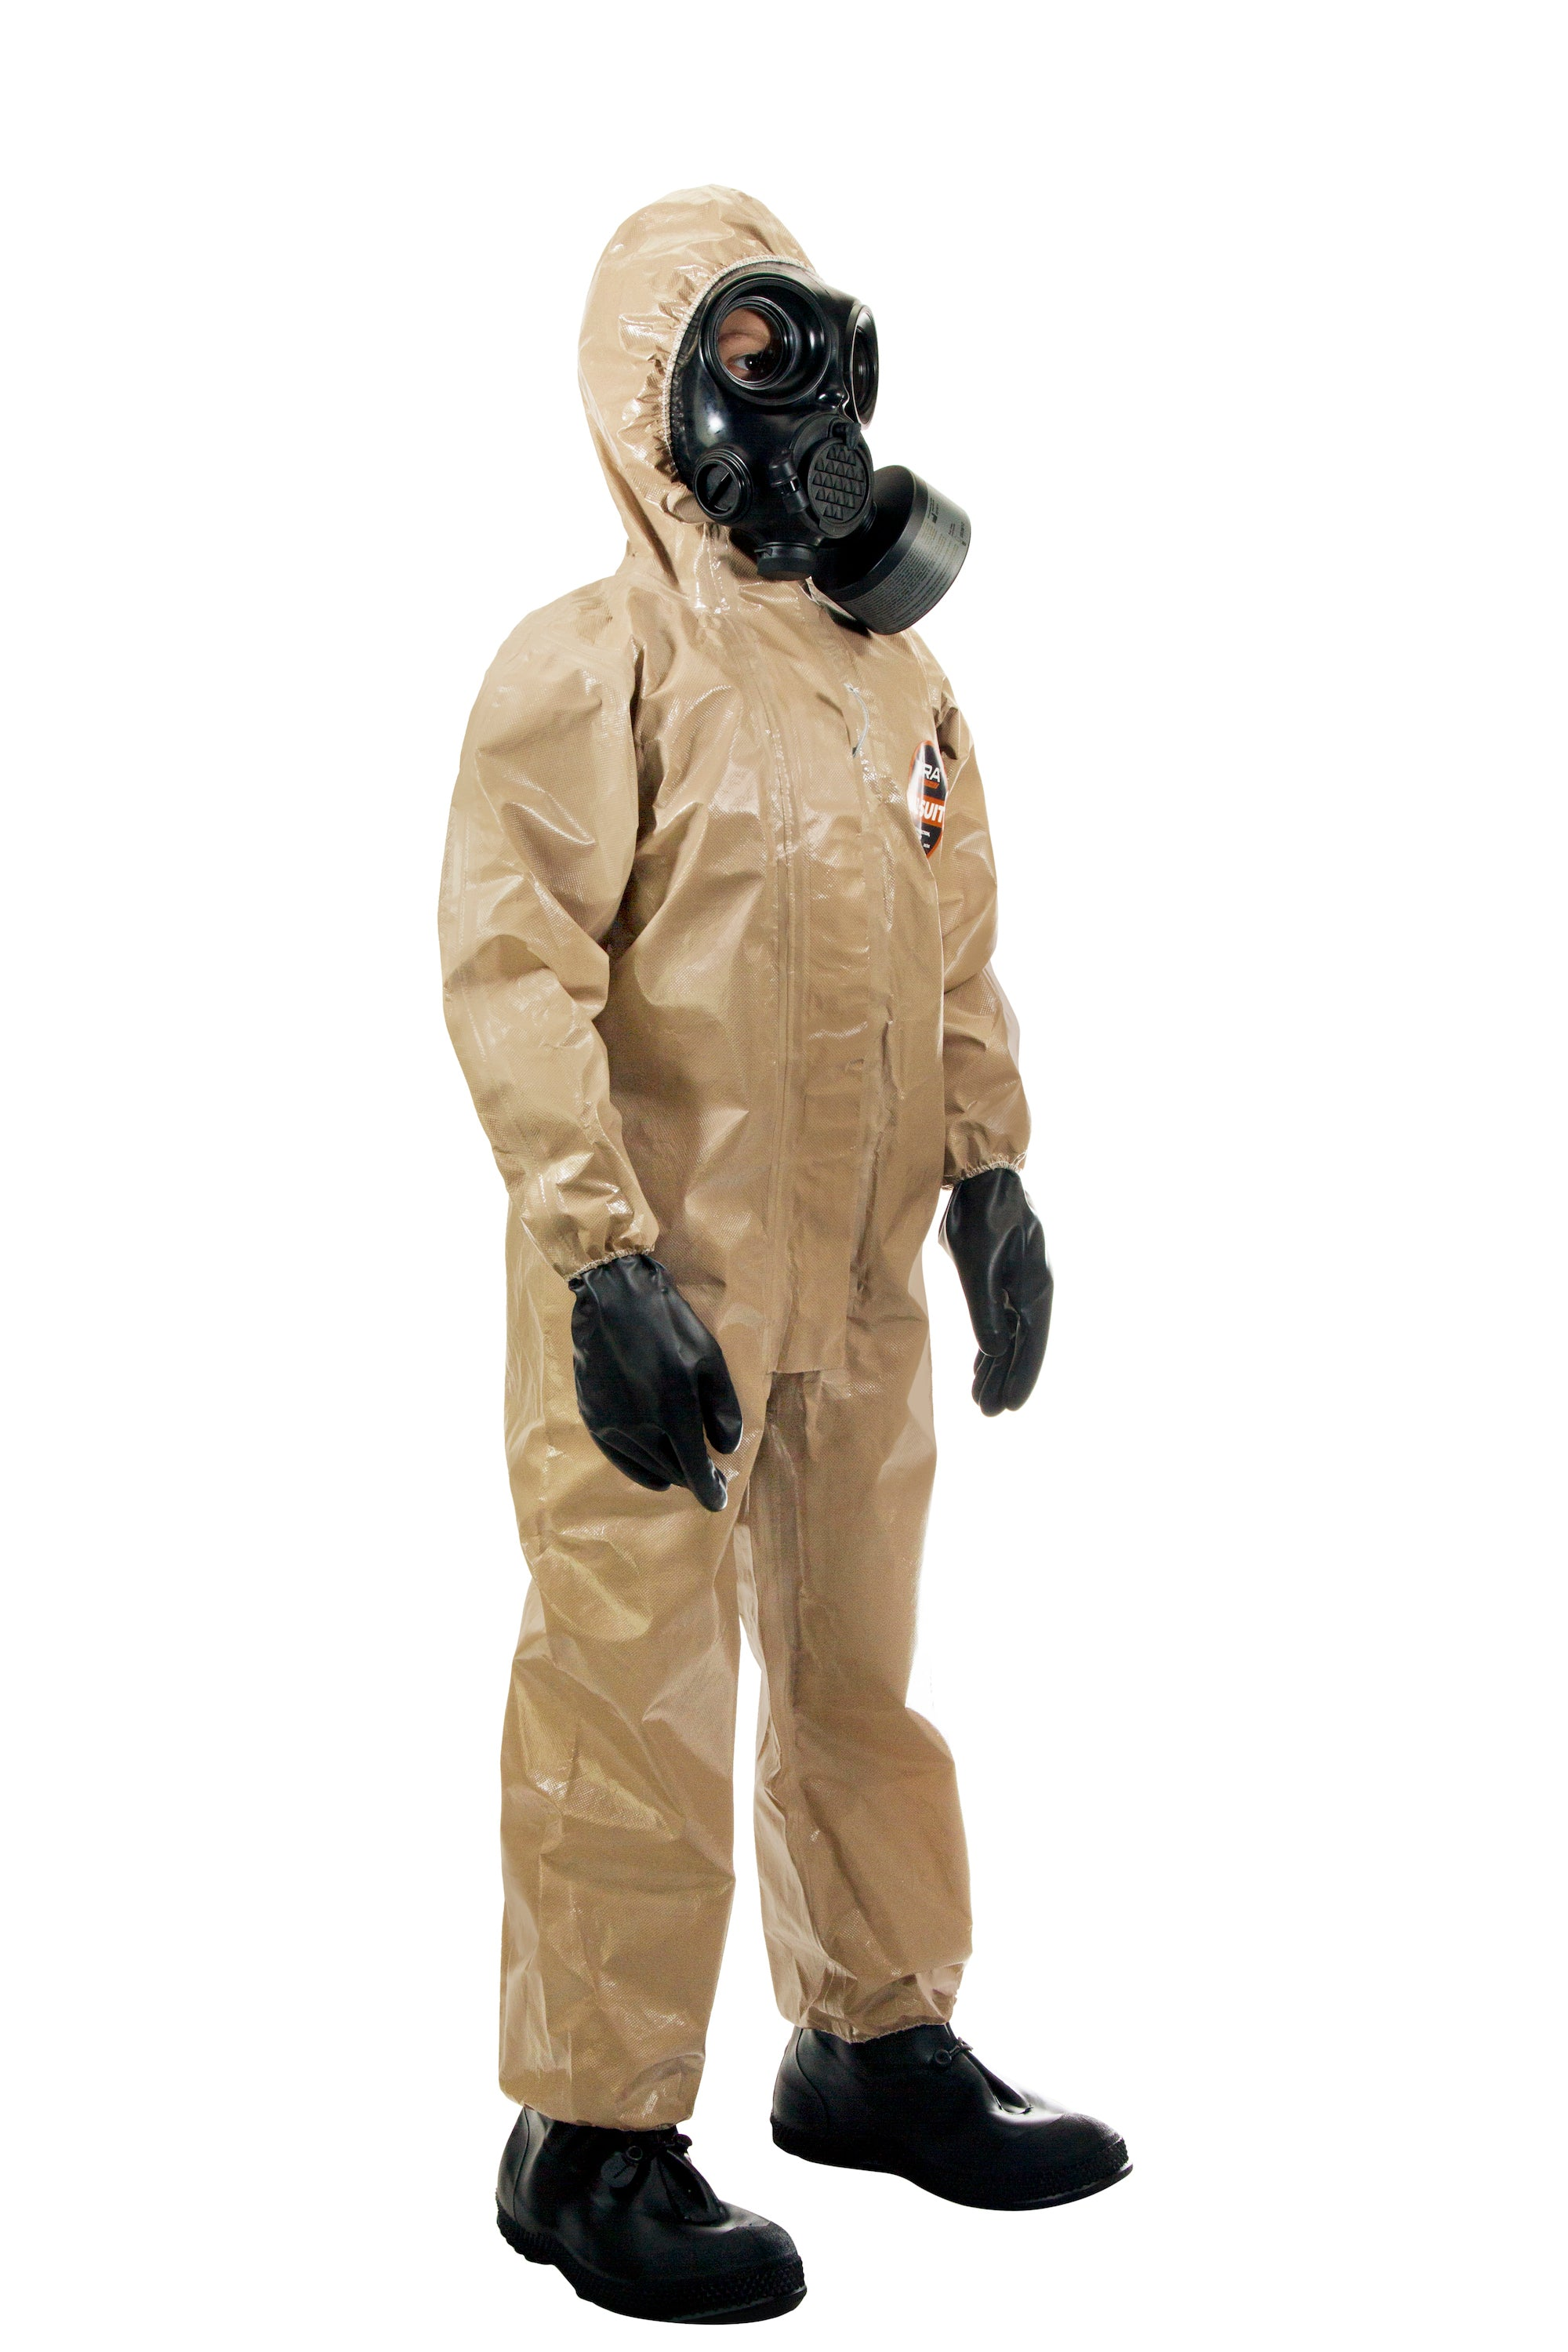 Child wearing the CM-7M gas mask with the HAZ-SUIT HAZMAT Suit